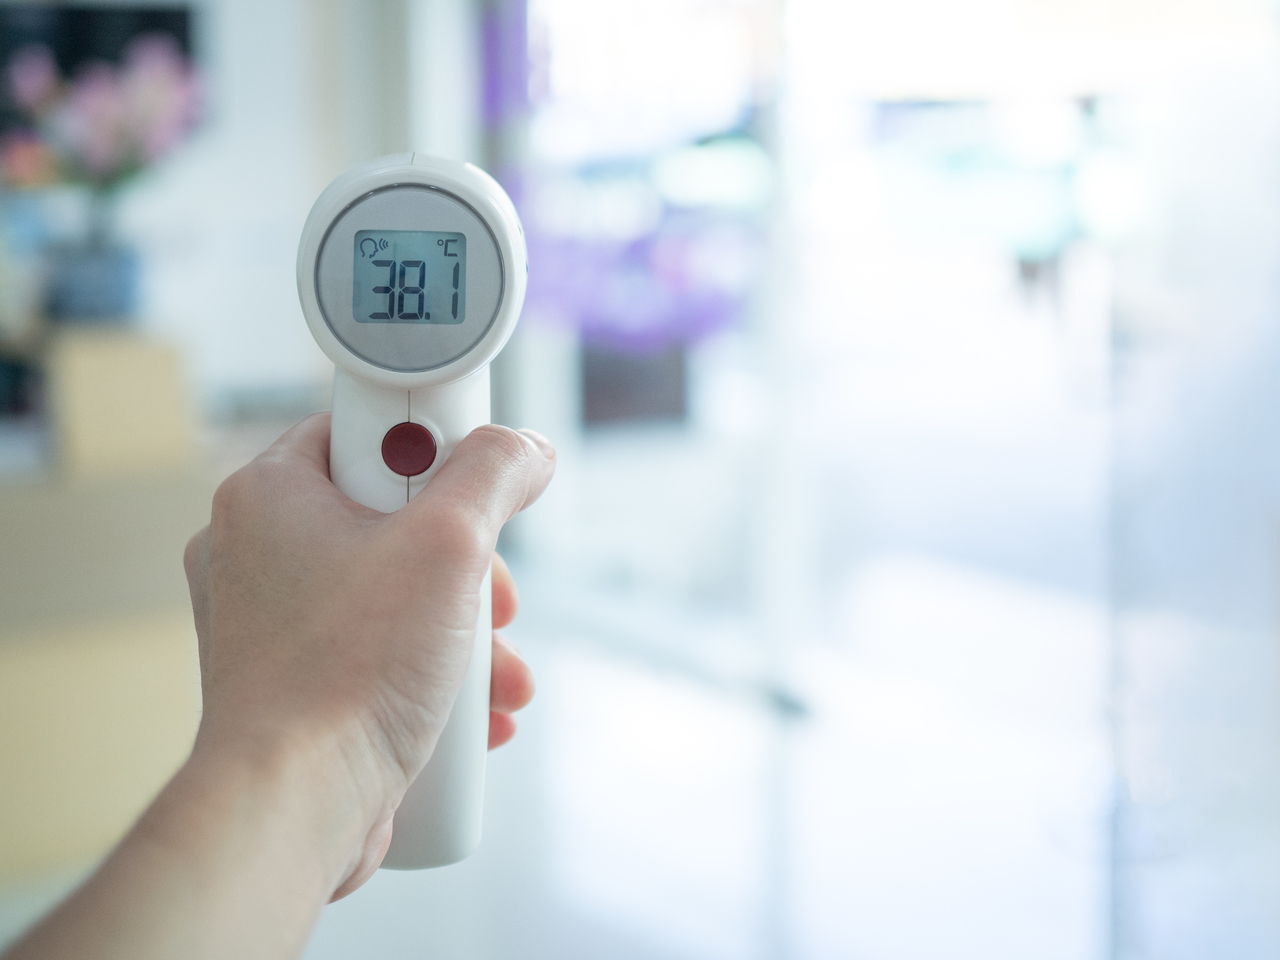 A person holding a contactless temperature scanner